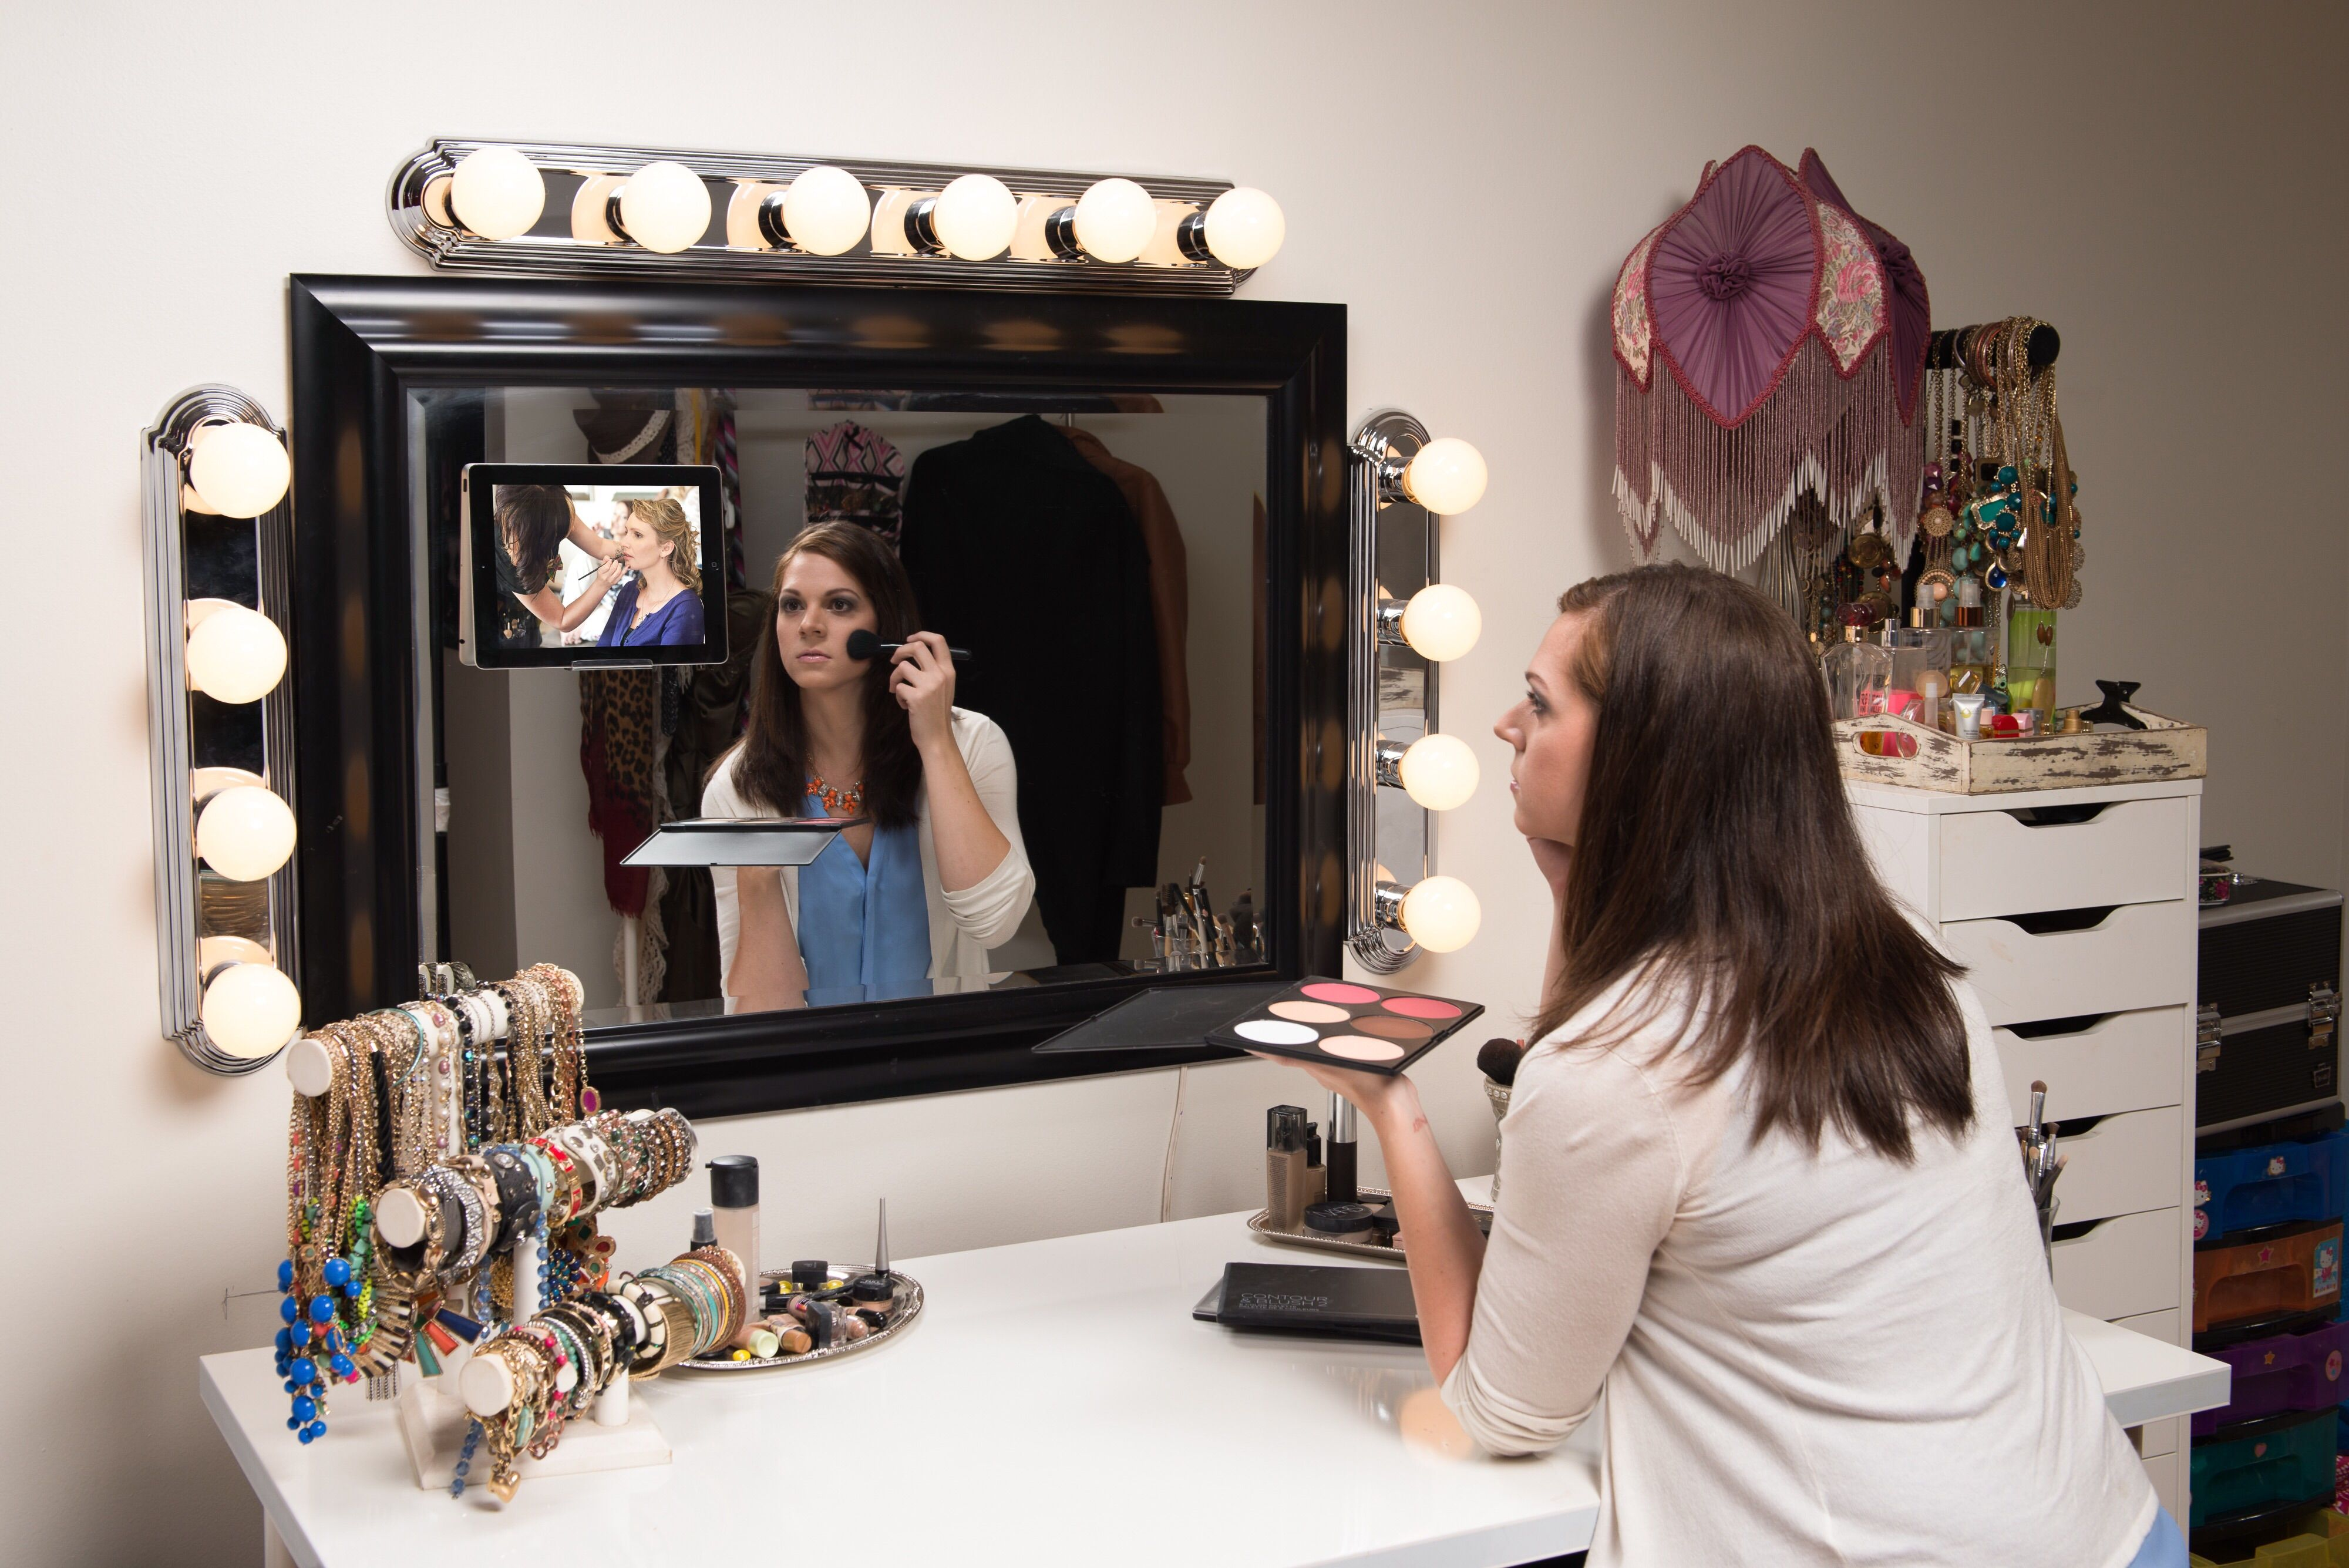 Follow make-up tutorials on your mirror.